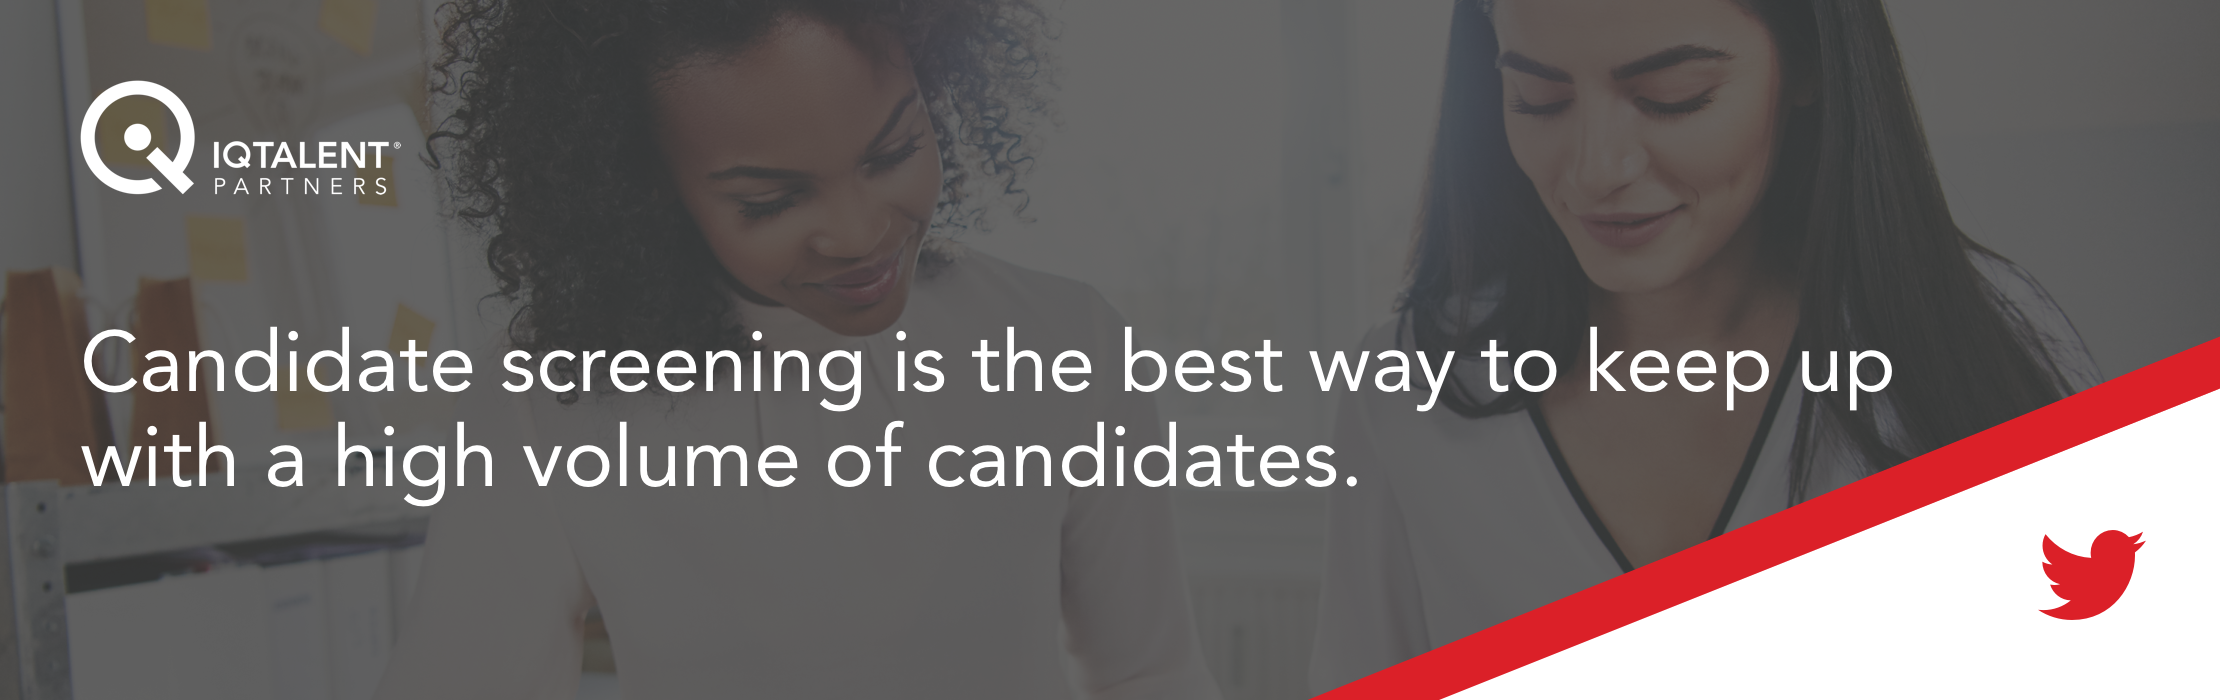 Candidate screening is the best way to keep up with a high volume of candidates.